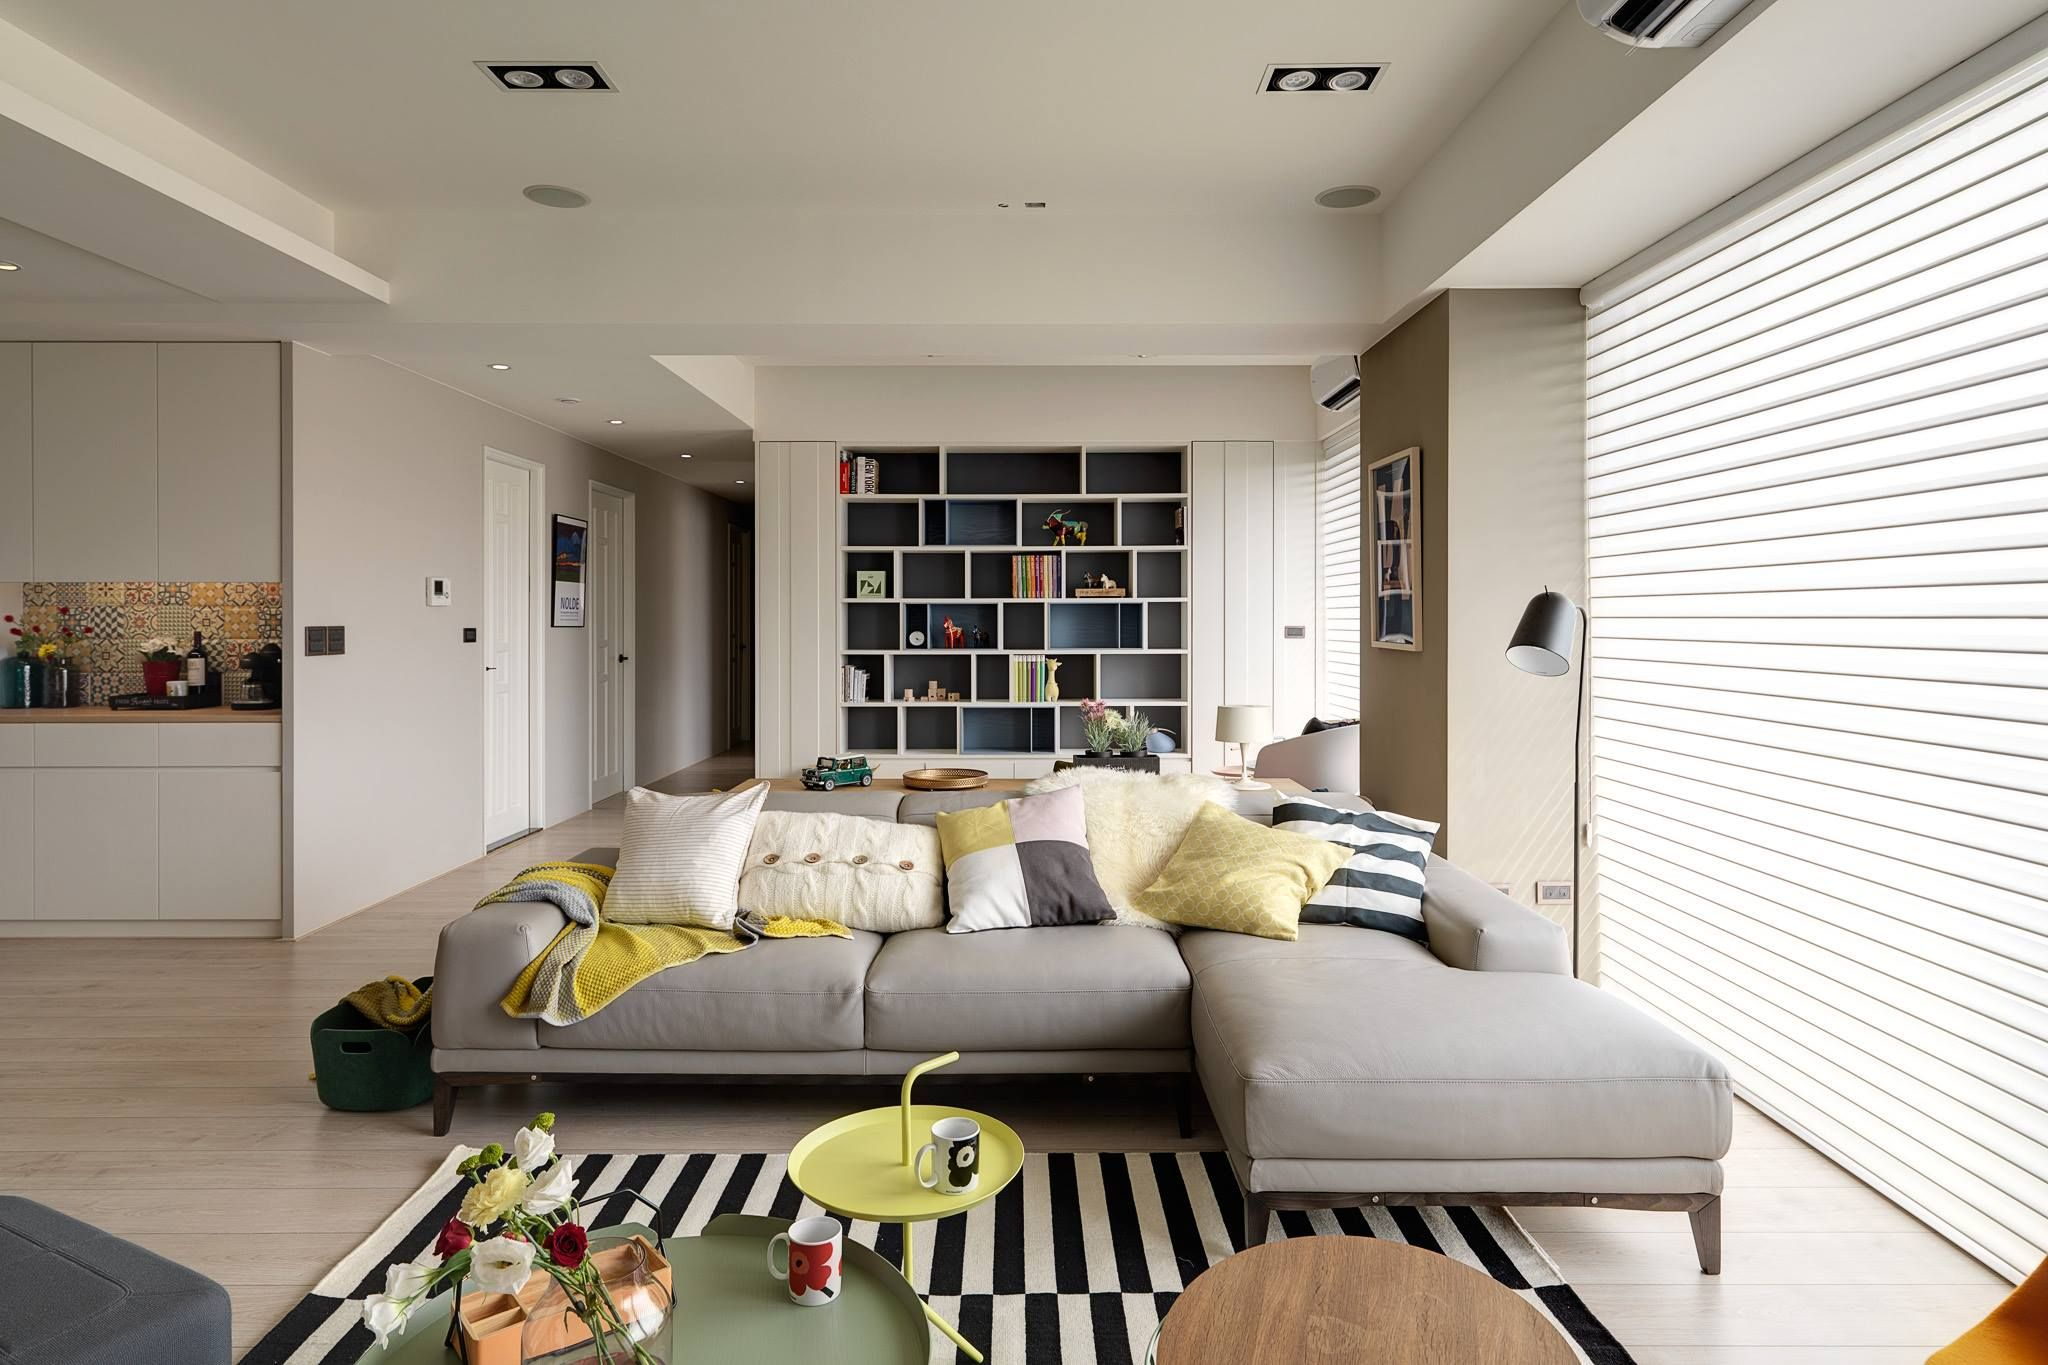 nordic decor inspiration in two colorful homes | |rendering